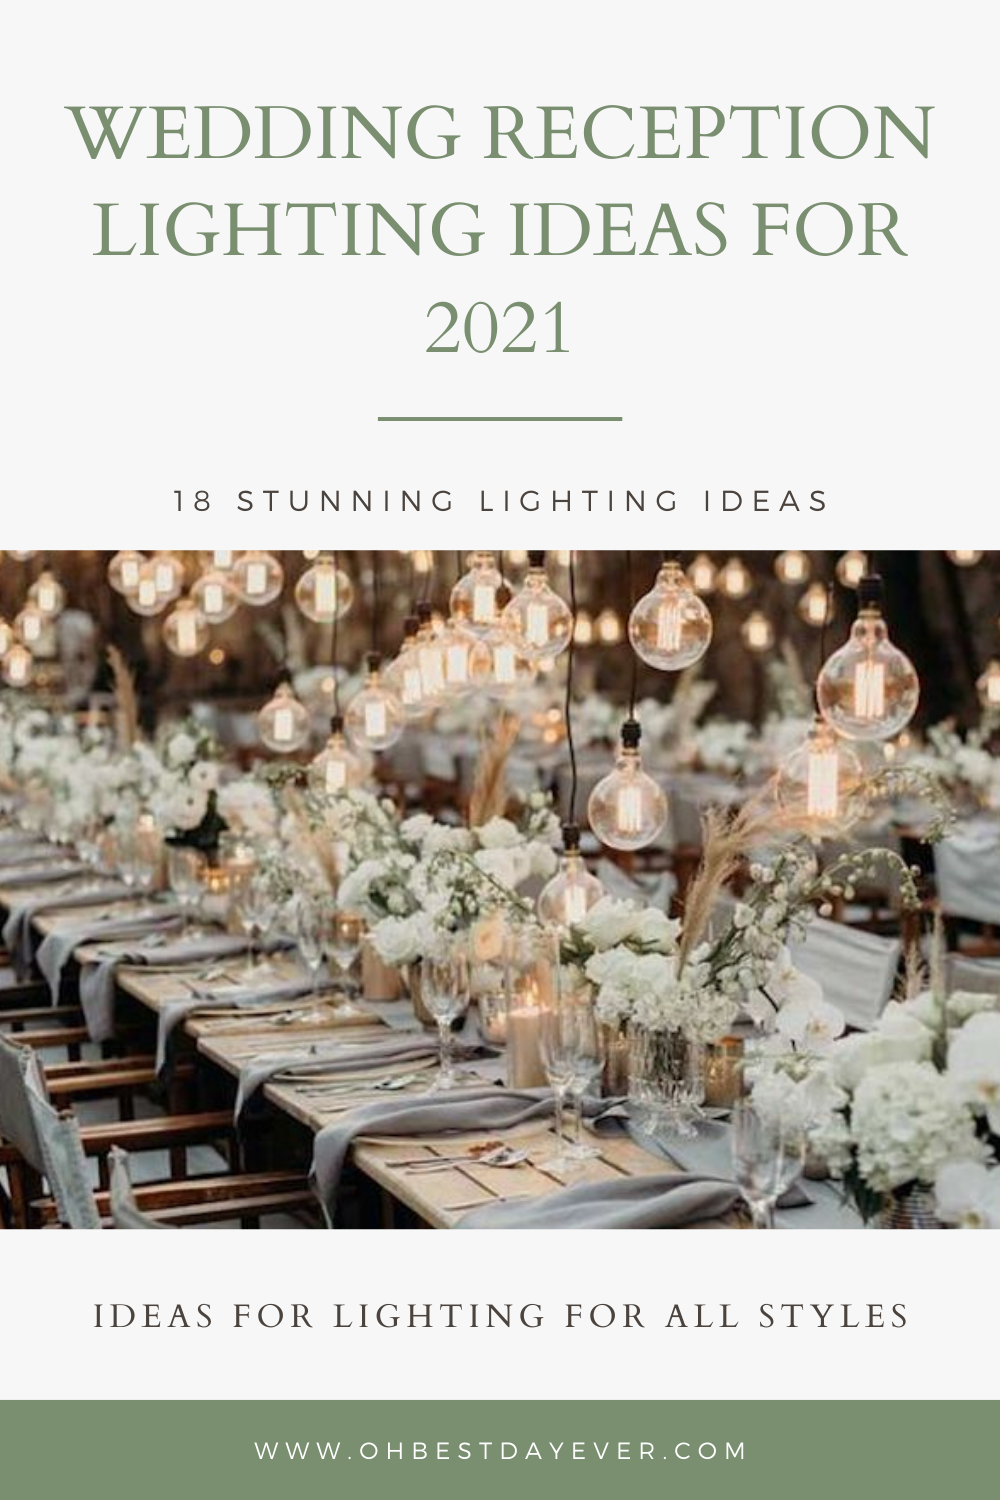 18 STUNNING WEDDING RECEPTION LIGHTING IDEAS FOR 2021 TRENDS